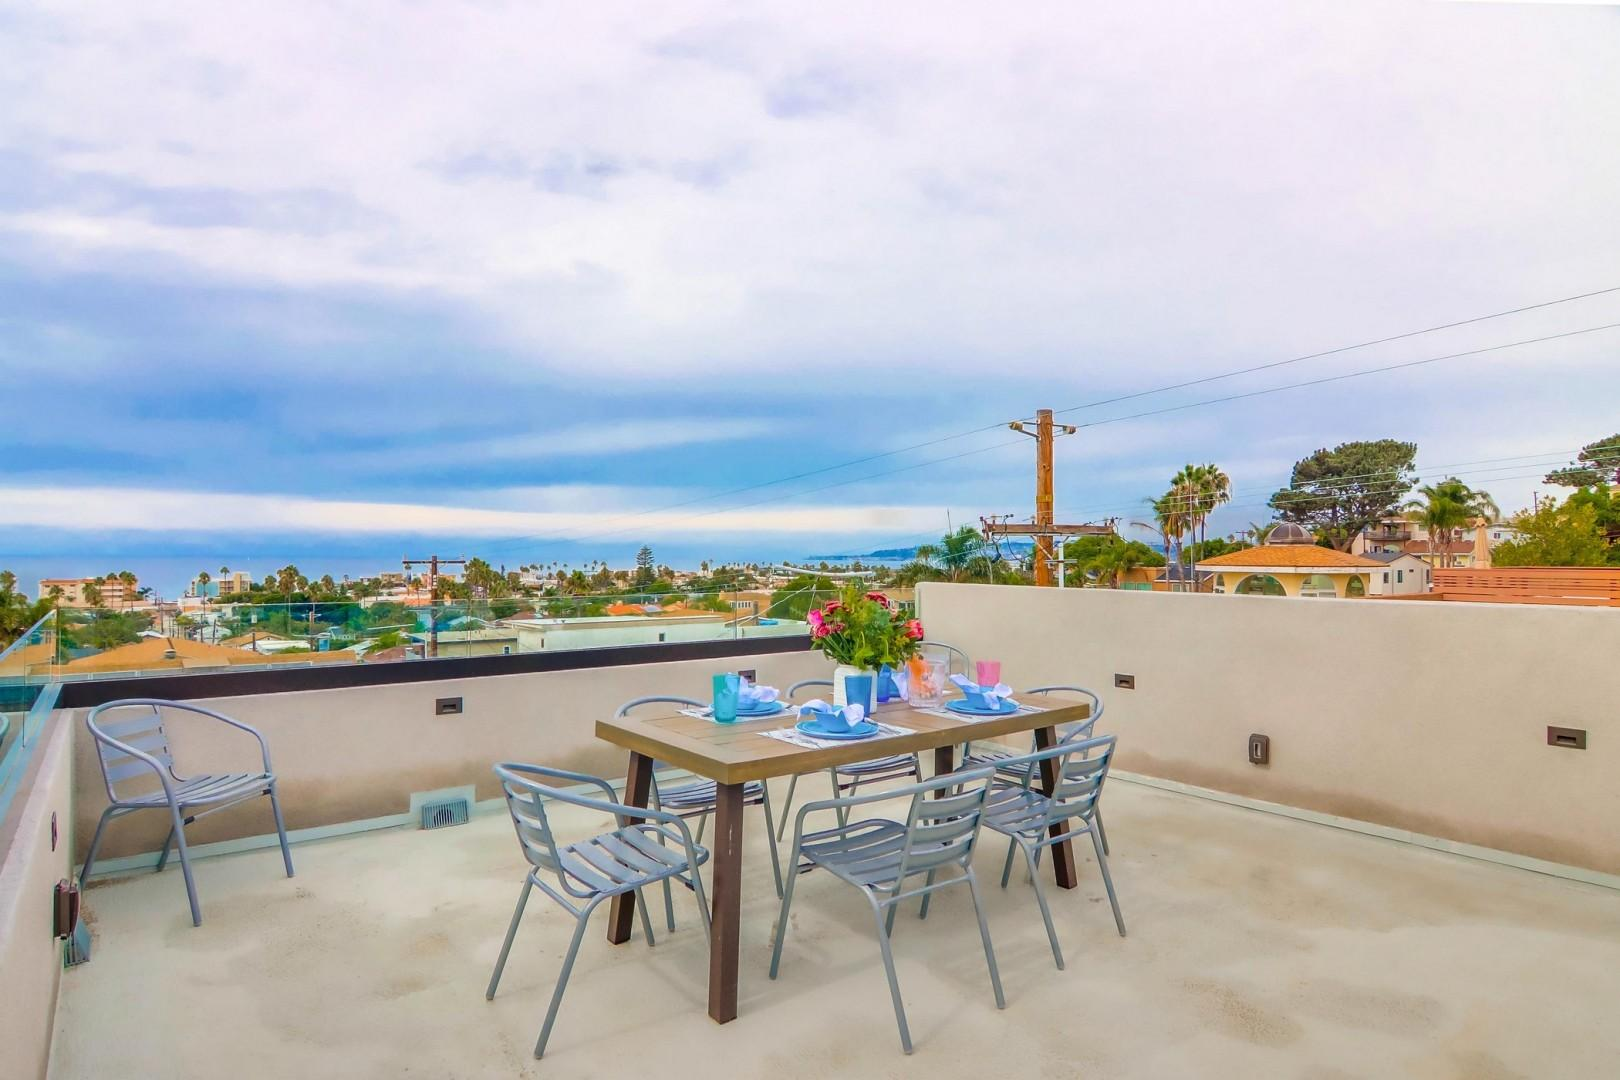 Rooftop deck with views